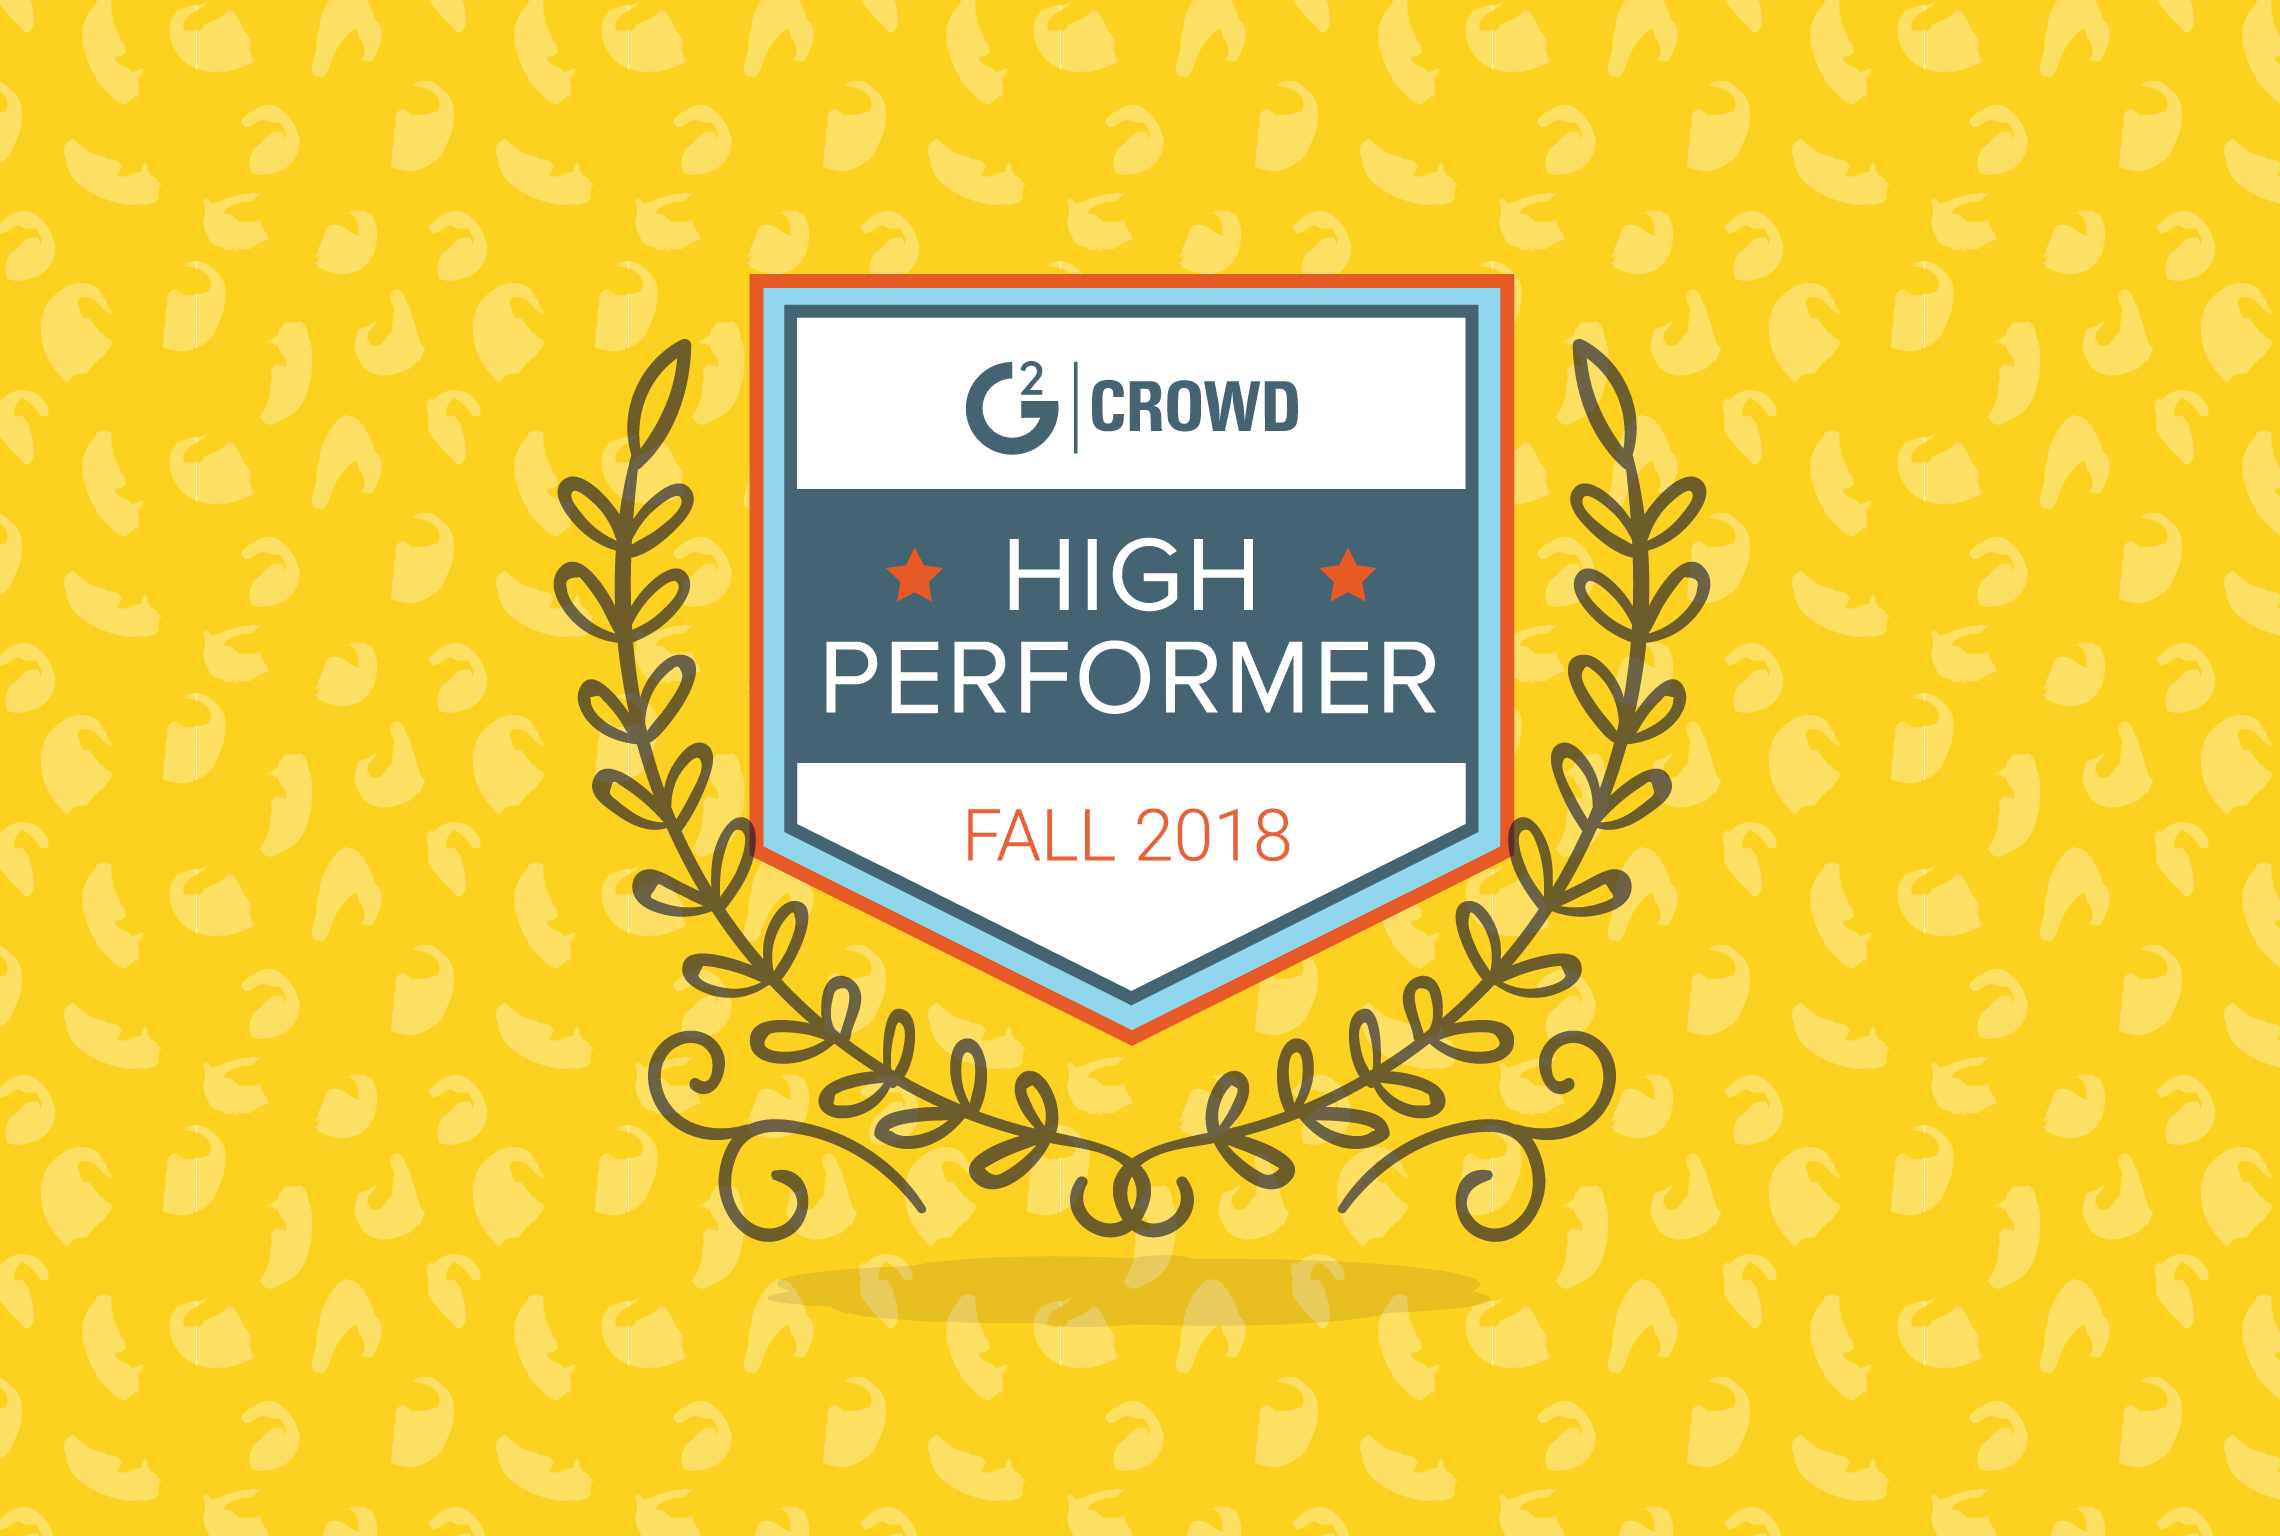 And another one! Nutshell earns 'High Performer' award in G2 Crowd's Fall 2018 CRM rankings